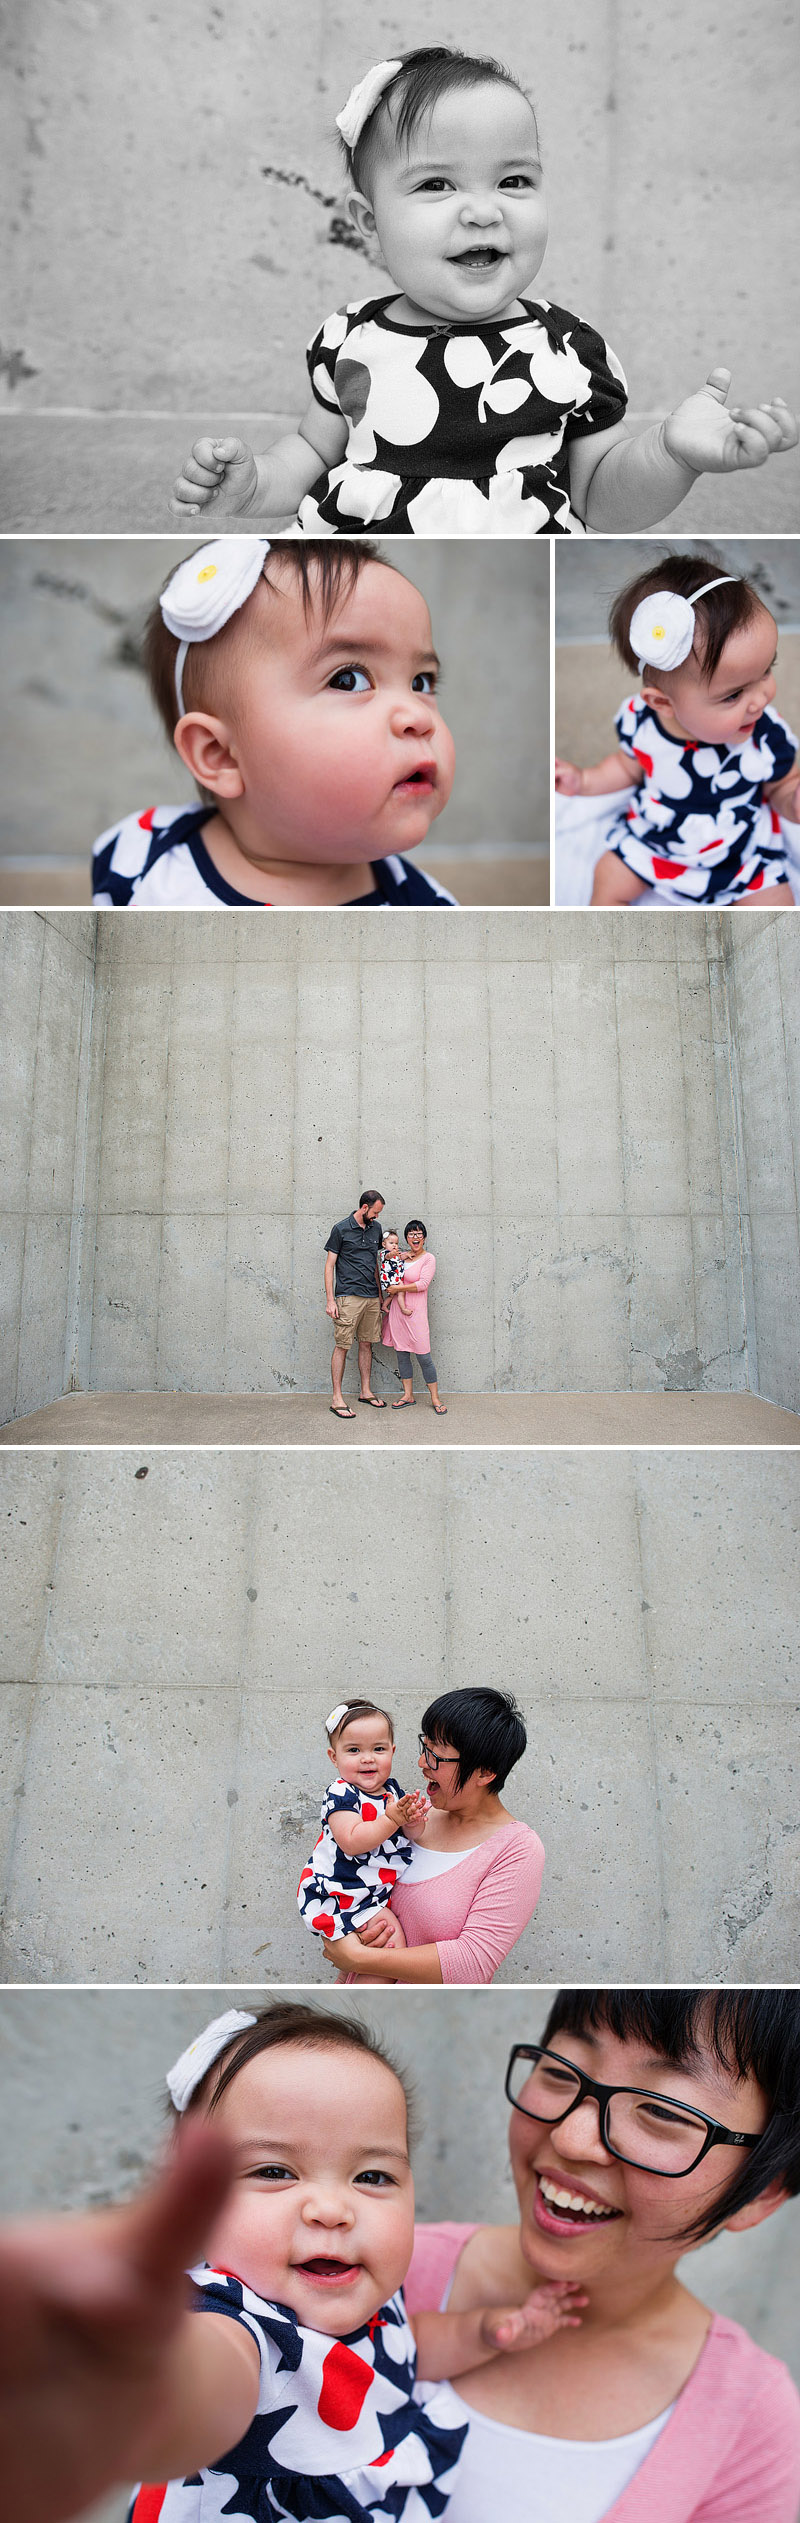 Fun family portraits on a handball court in North Kansas City.